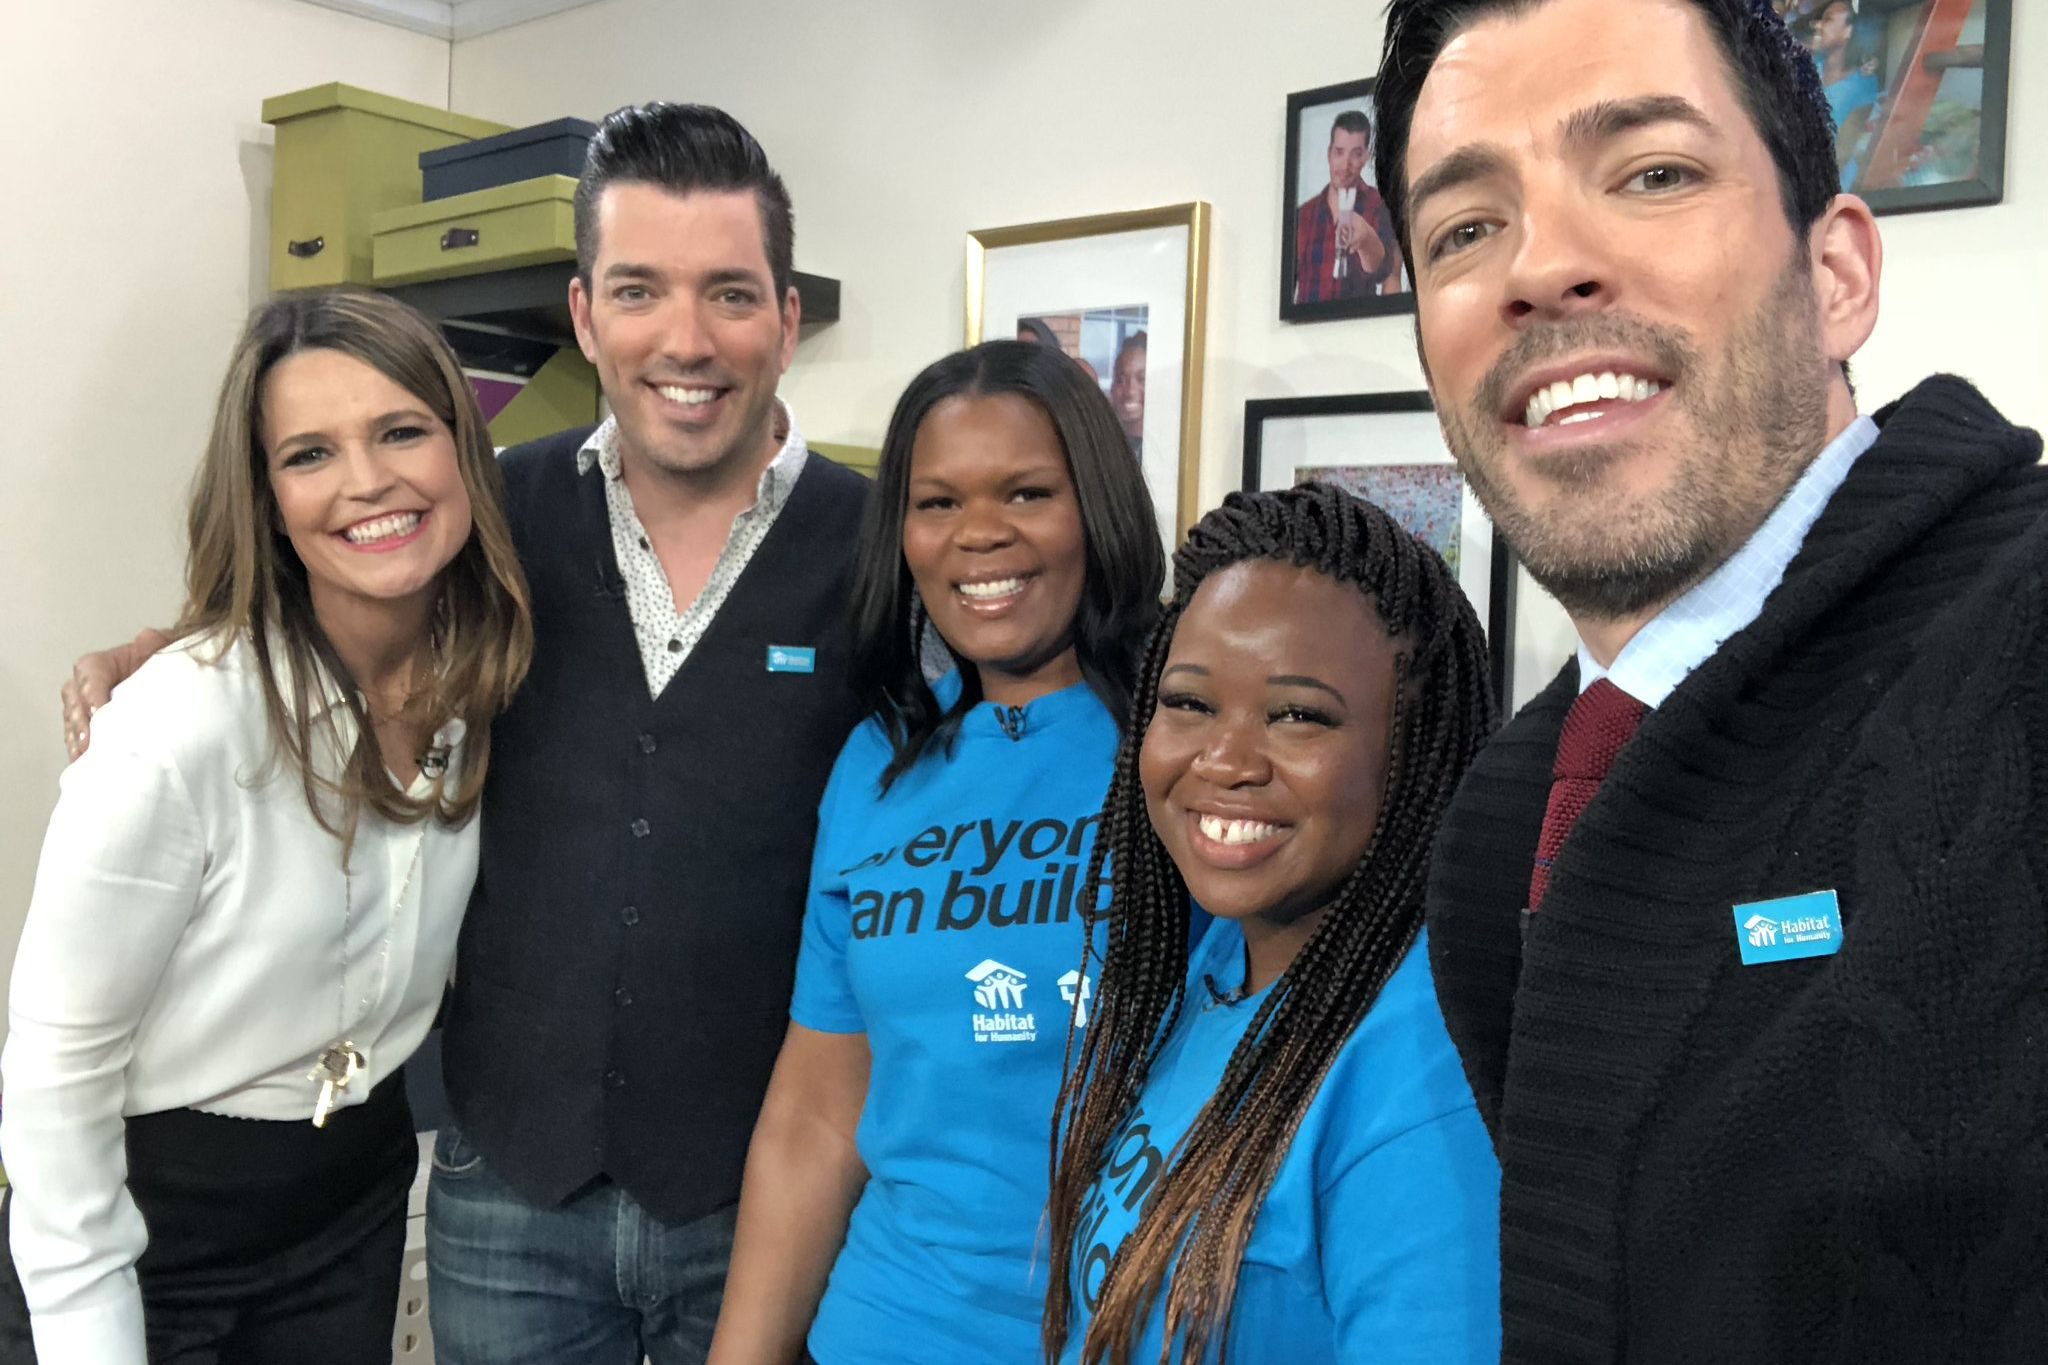 'Property Brothers' Team Up with Habitat for Humanity to Build Two Nashville Moms New Homes